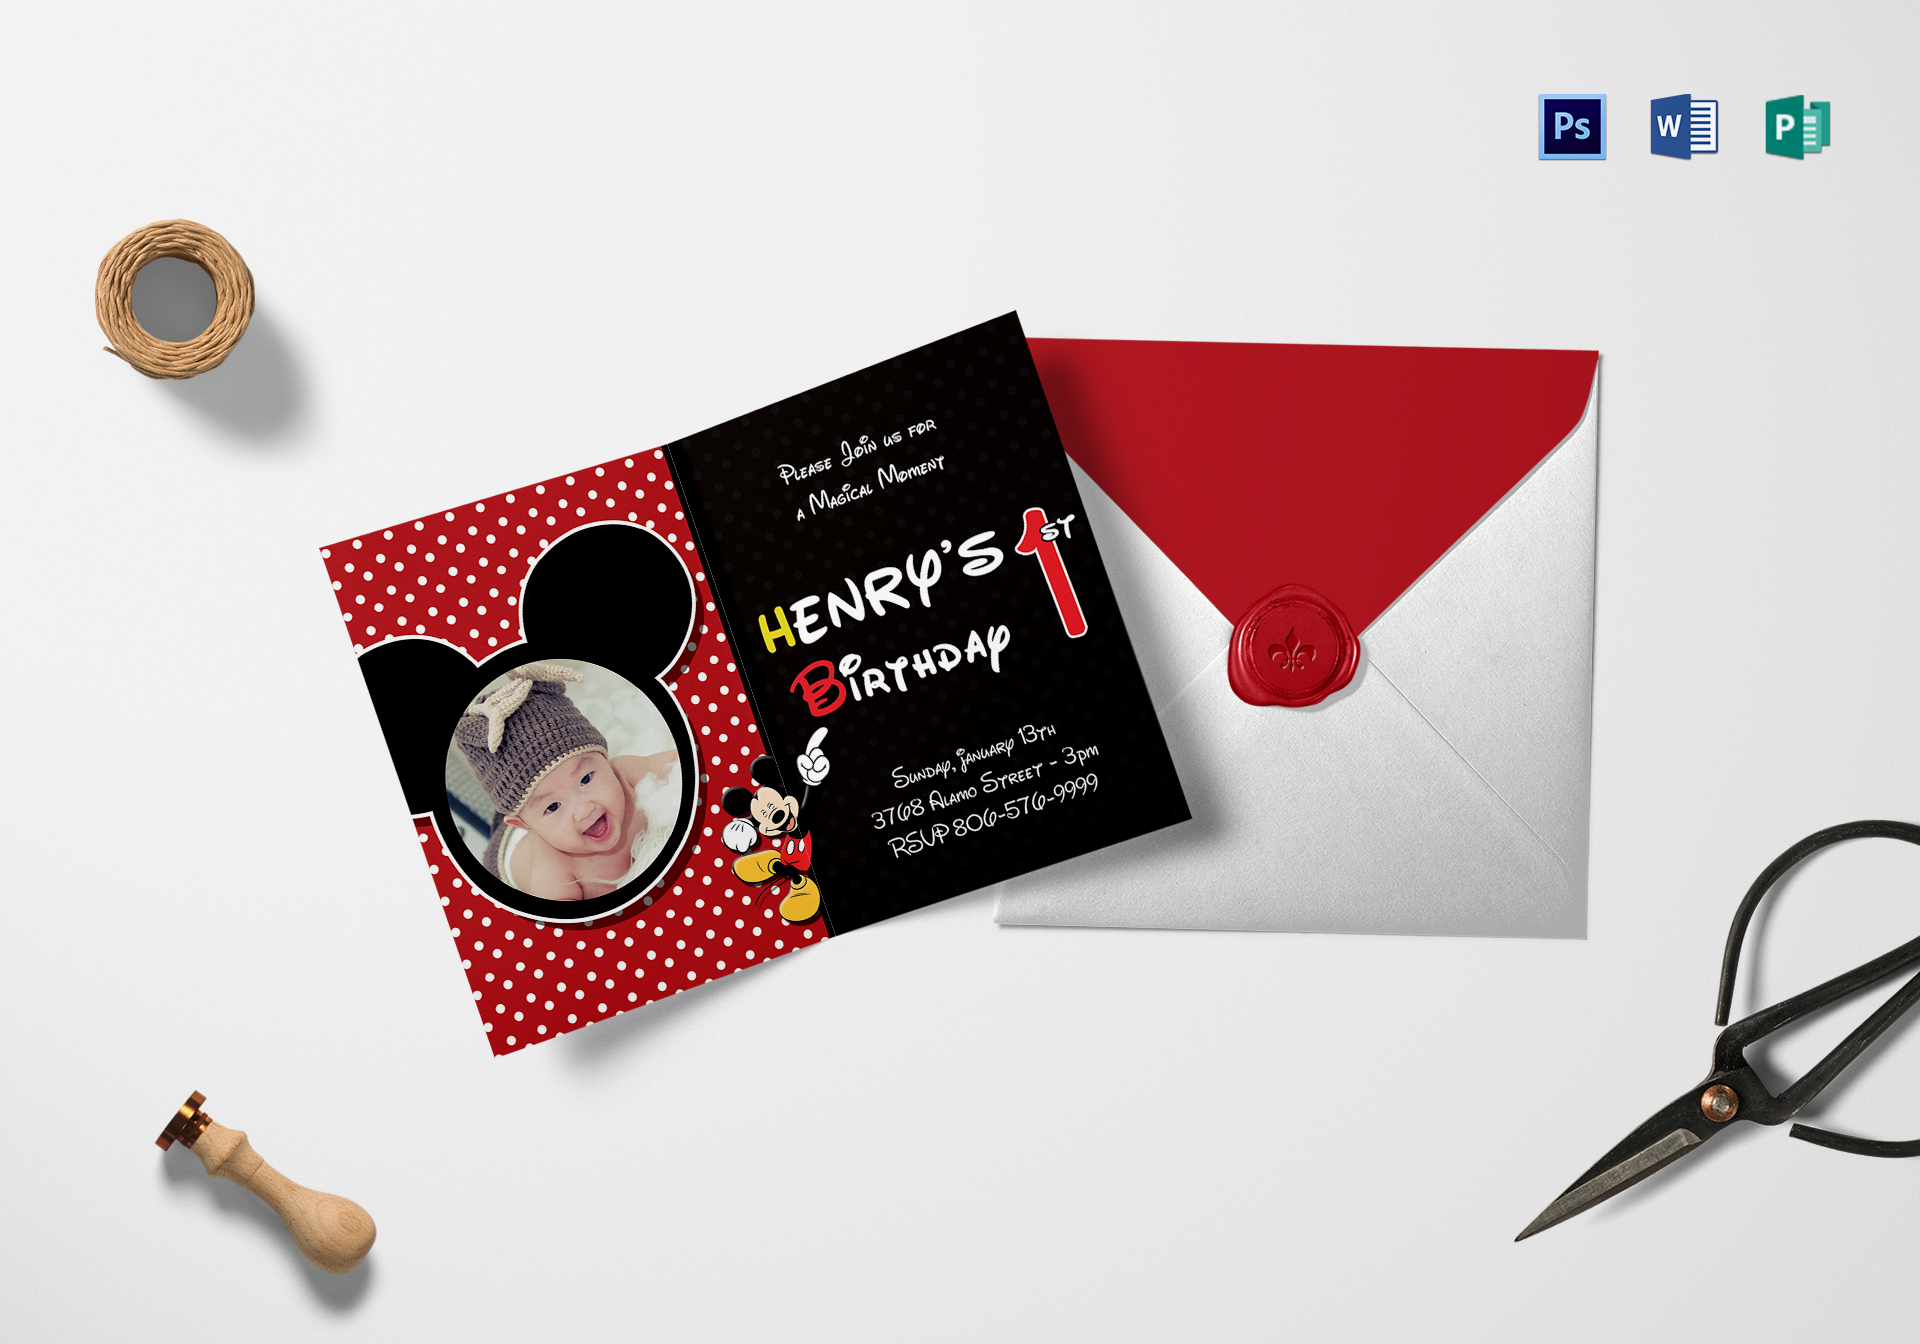 Mickey Mouse Birthday Invitation Card Design Template in Word, PSD ...